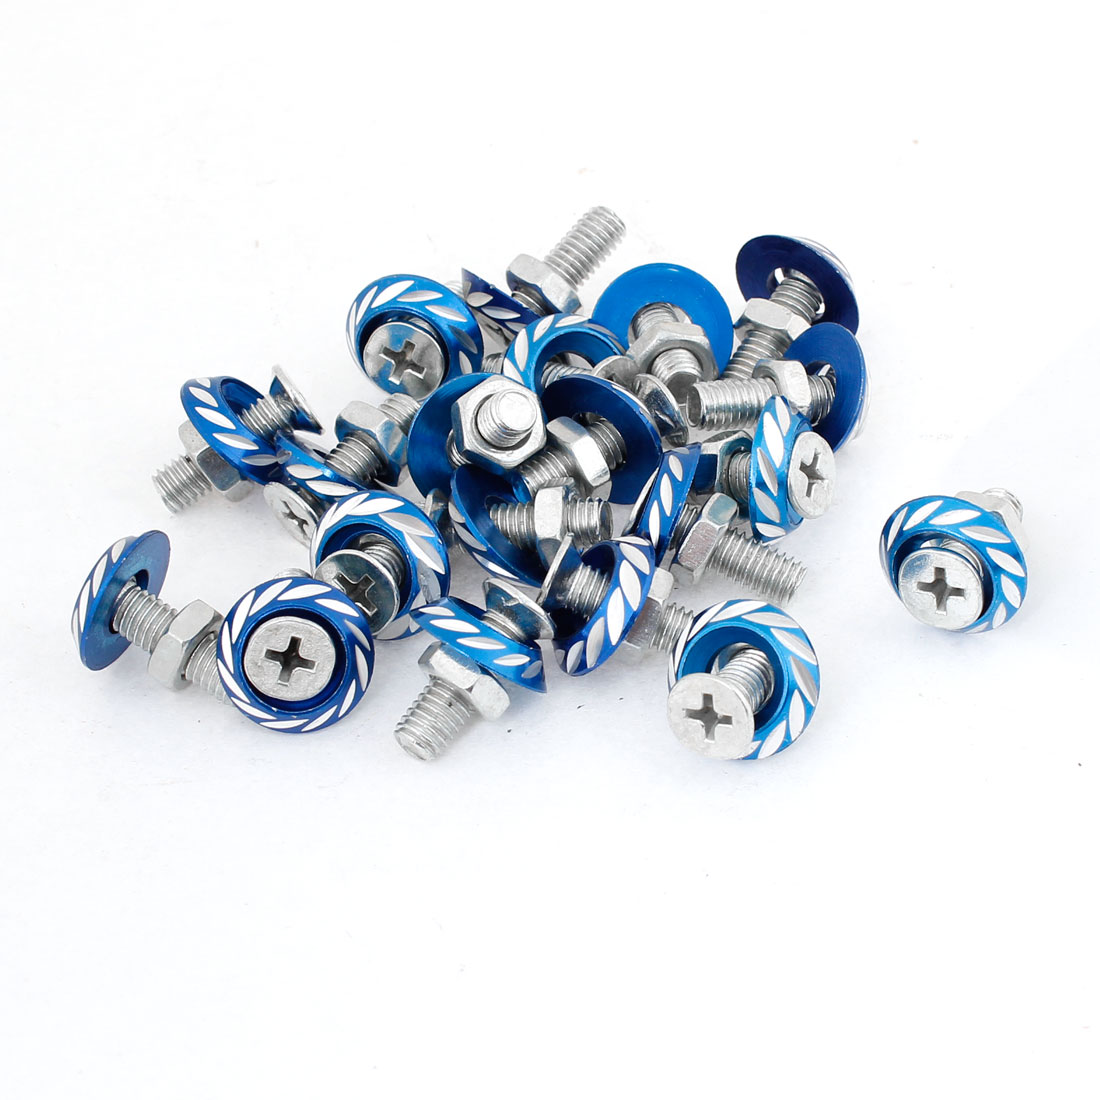 20 Pcs 25mm High Blue Round Auto Car License Plate Bolt Screw